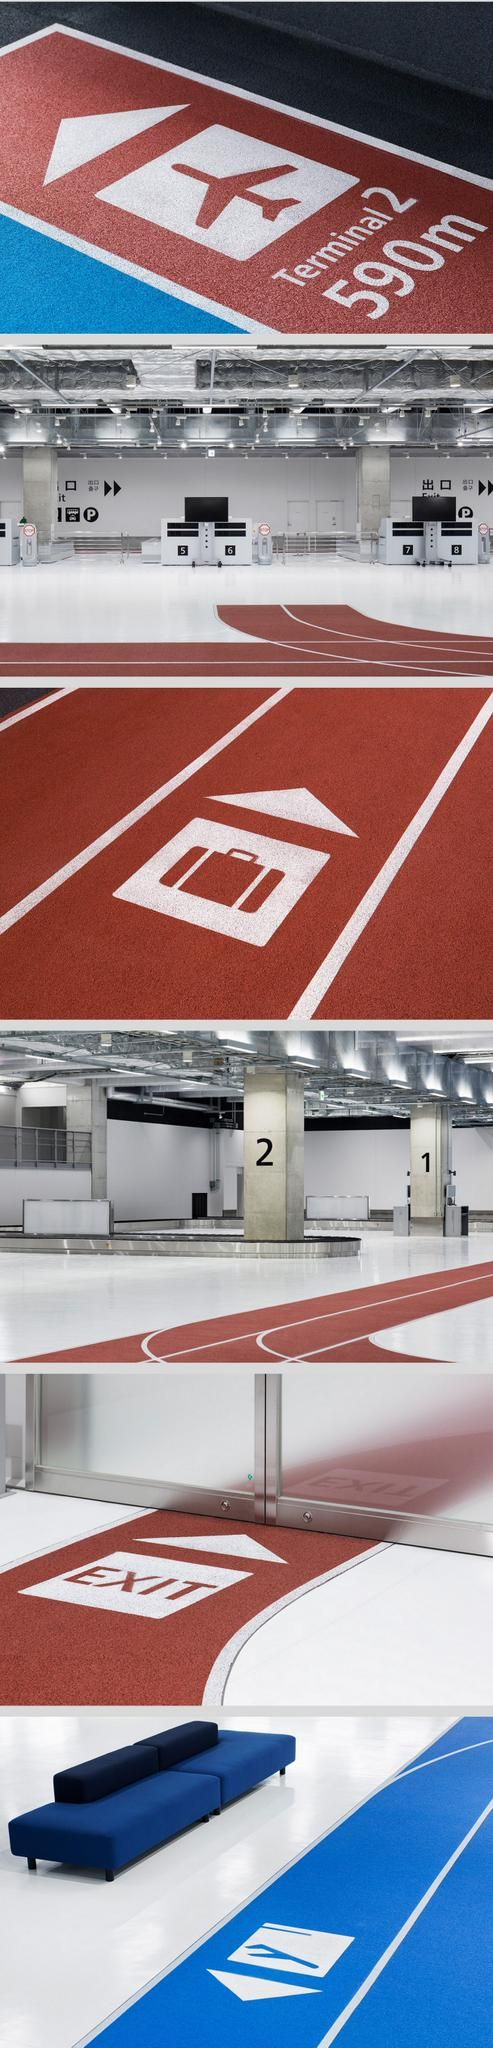 Colour-coded running tracks at Narita Airport, Japan. Click image for link to full profile and visit the slowottawa.ca boards >> http://www.pinterest.com/slowottawa/